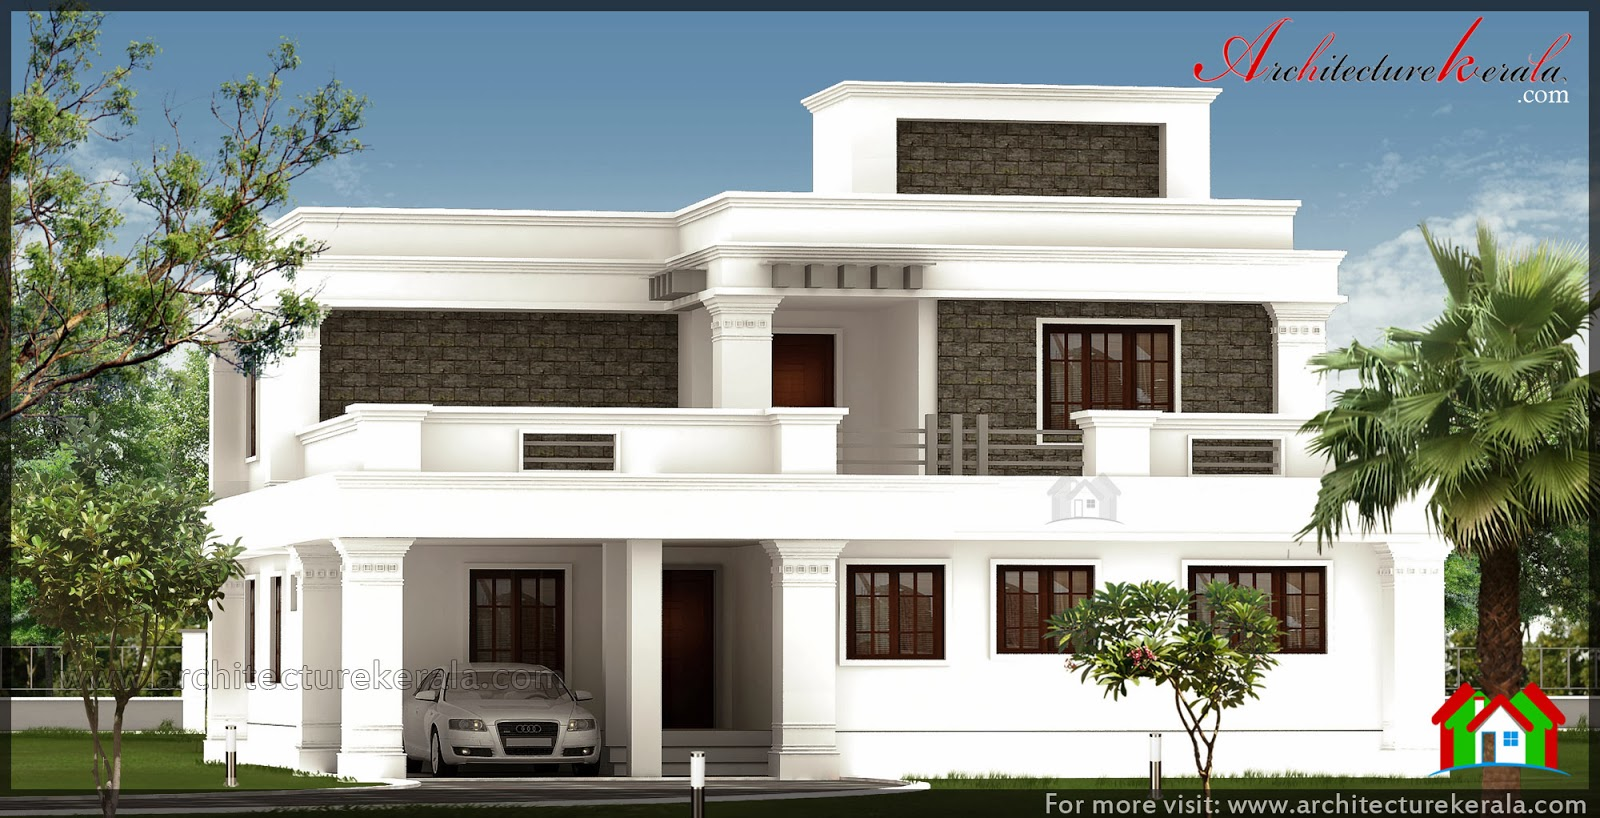 2400 square feet house design architecture kerala for Modern house plans 2400 sq ft